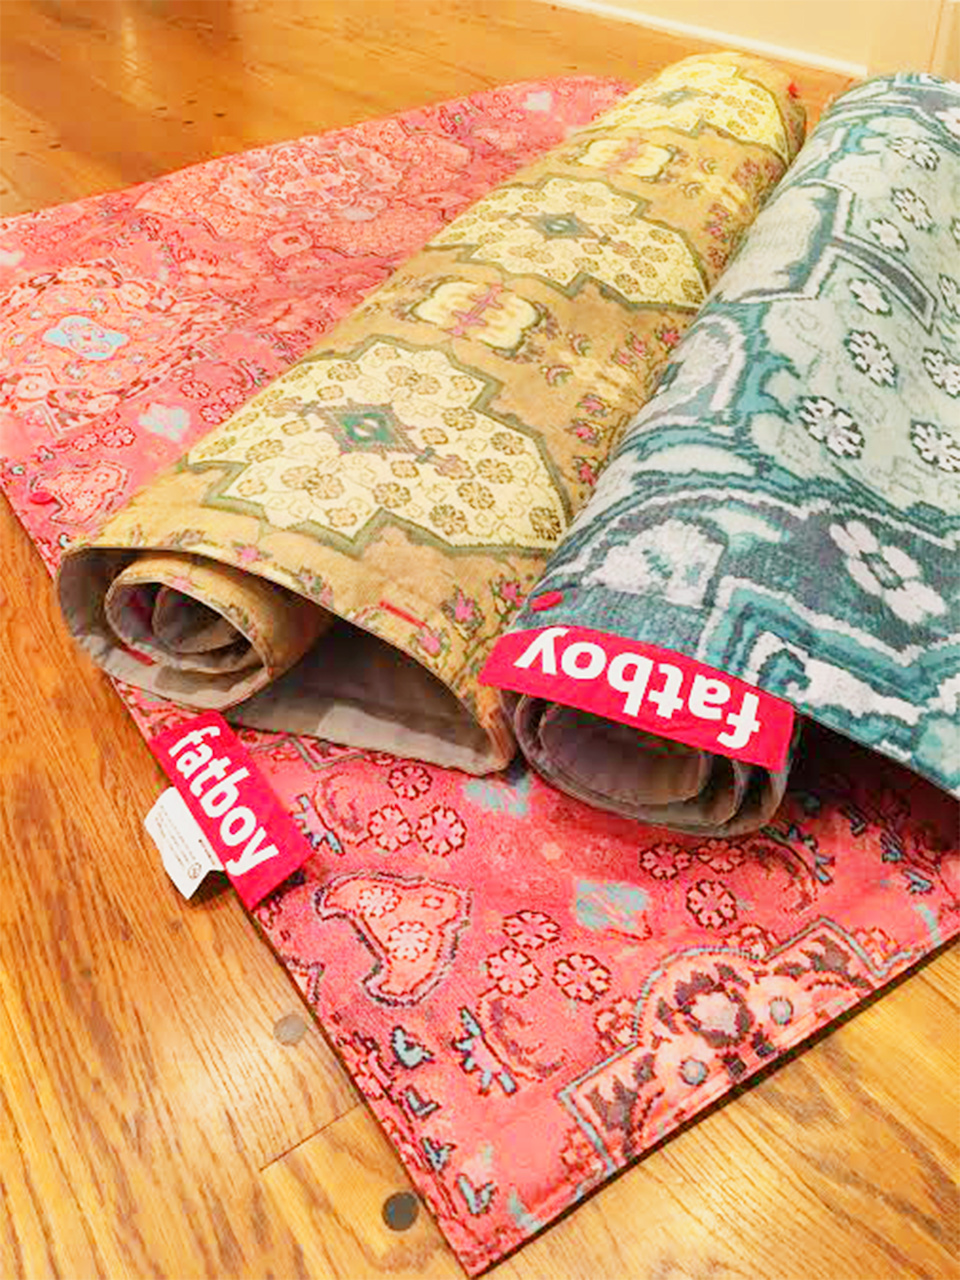 Fatboy blankets, $179 each, at Paige Albright Orientals